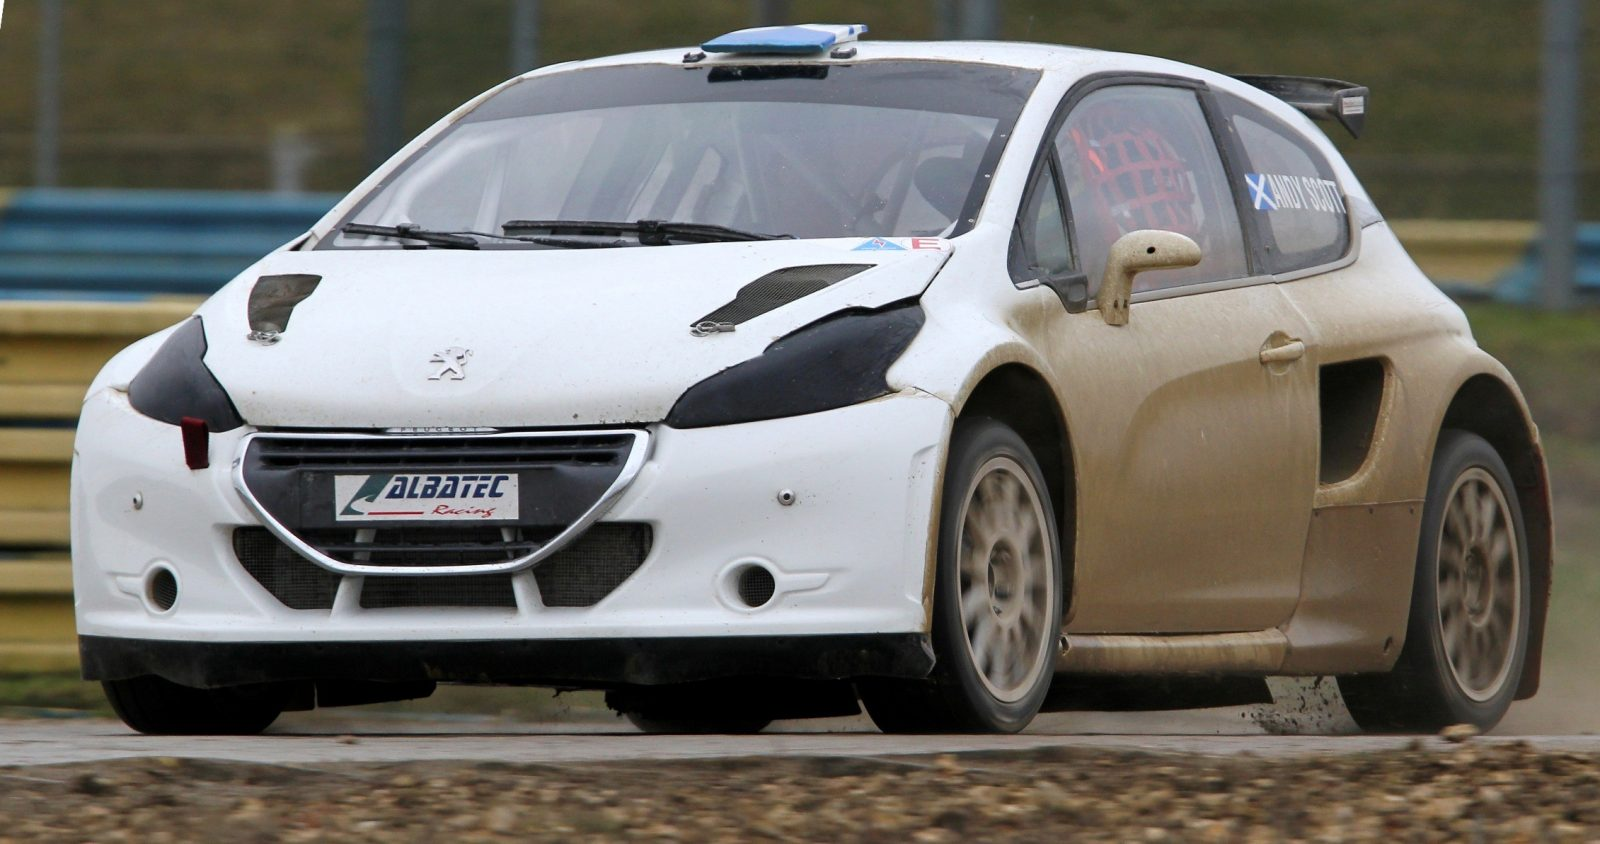 All-New FIA RallyCross Series Looks FUN! Dart, Sonic, Beetle, Fiesta, Fabia, Pug 208GTI and More On-Board 4